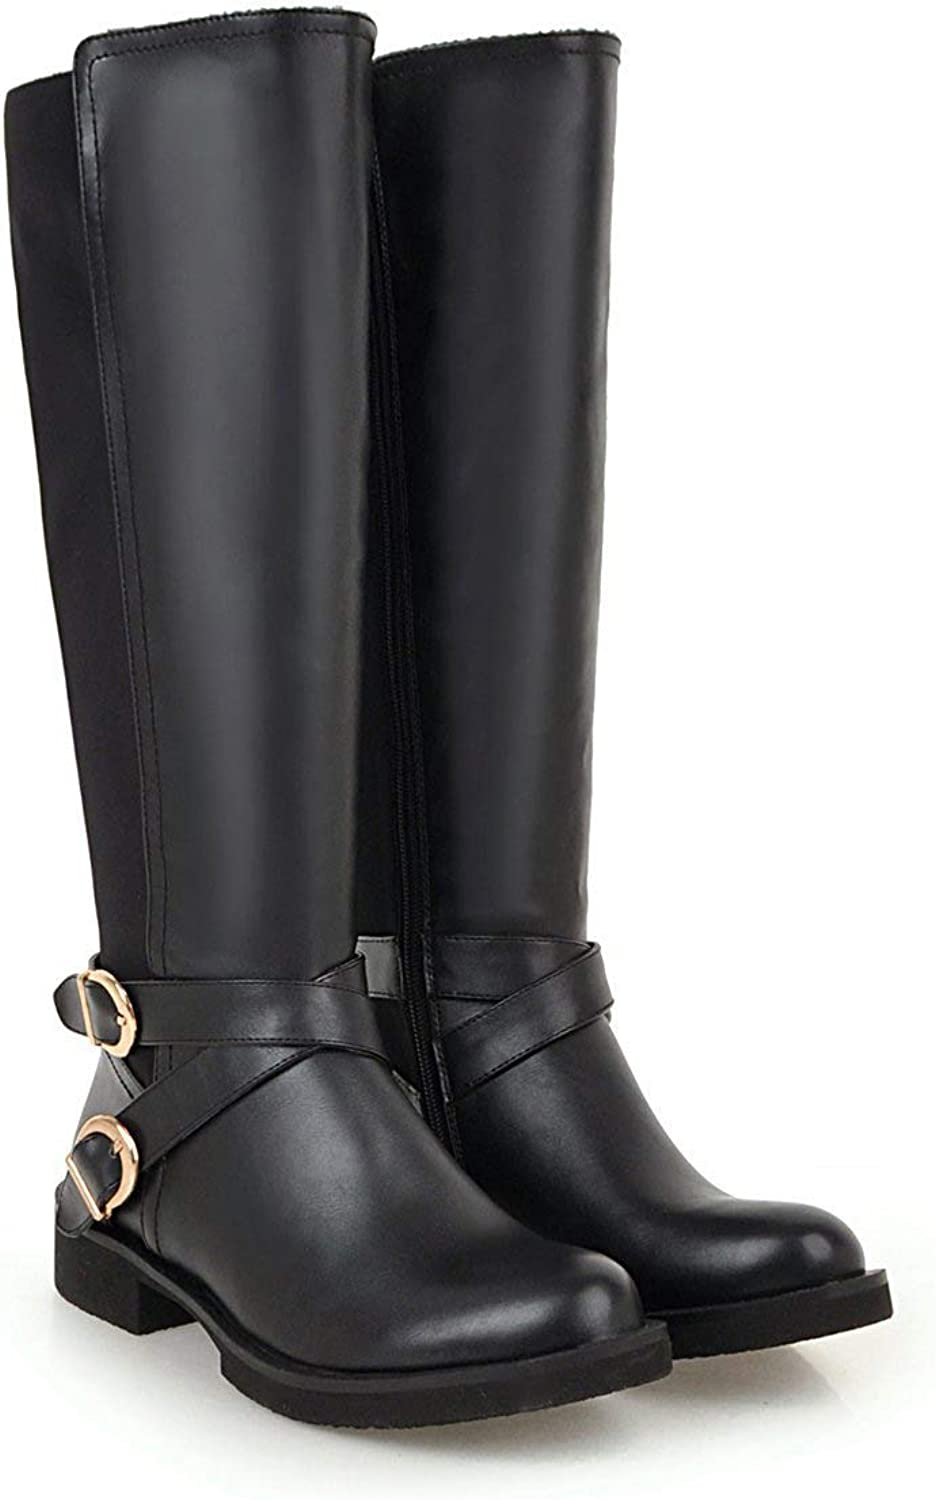 Women's Riding Boots Knee High Boots Boots Low Heel Round Toe Cool Boots with Buckle Zipper for Fall Winter Black White